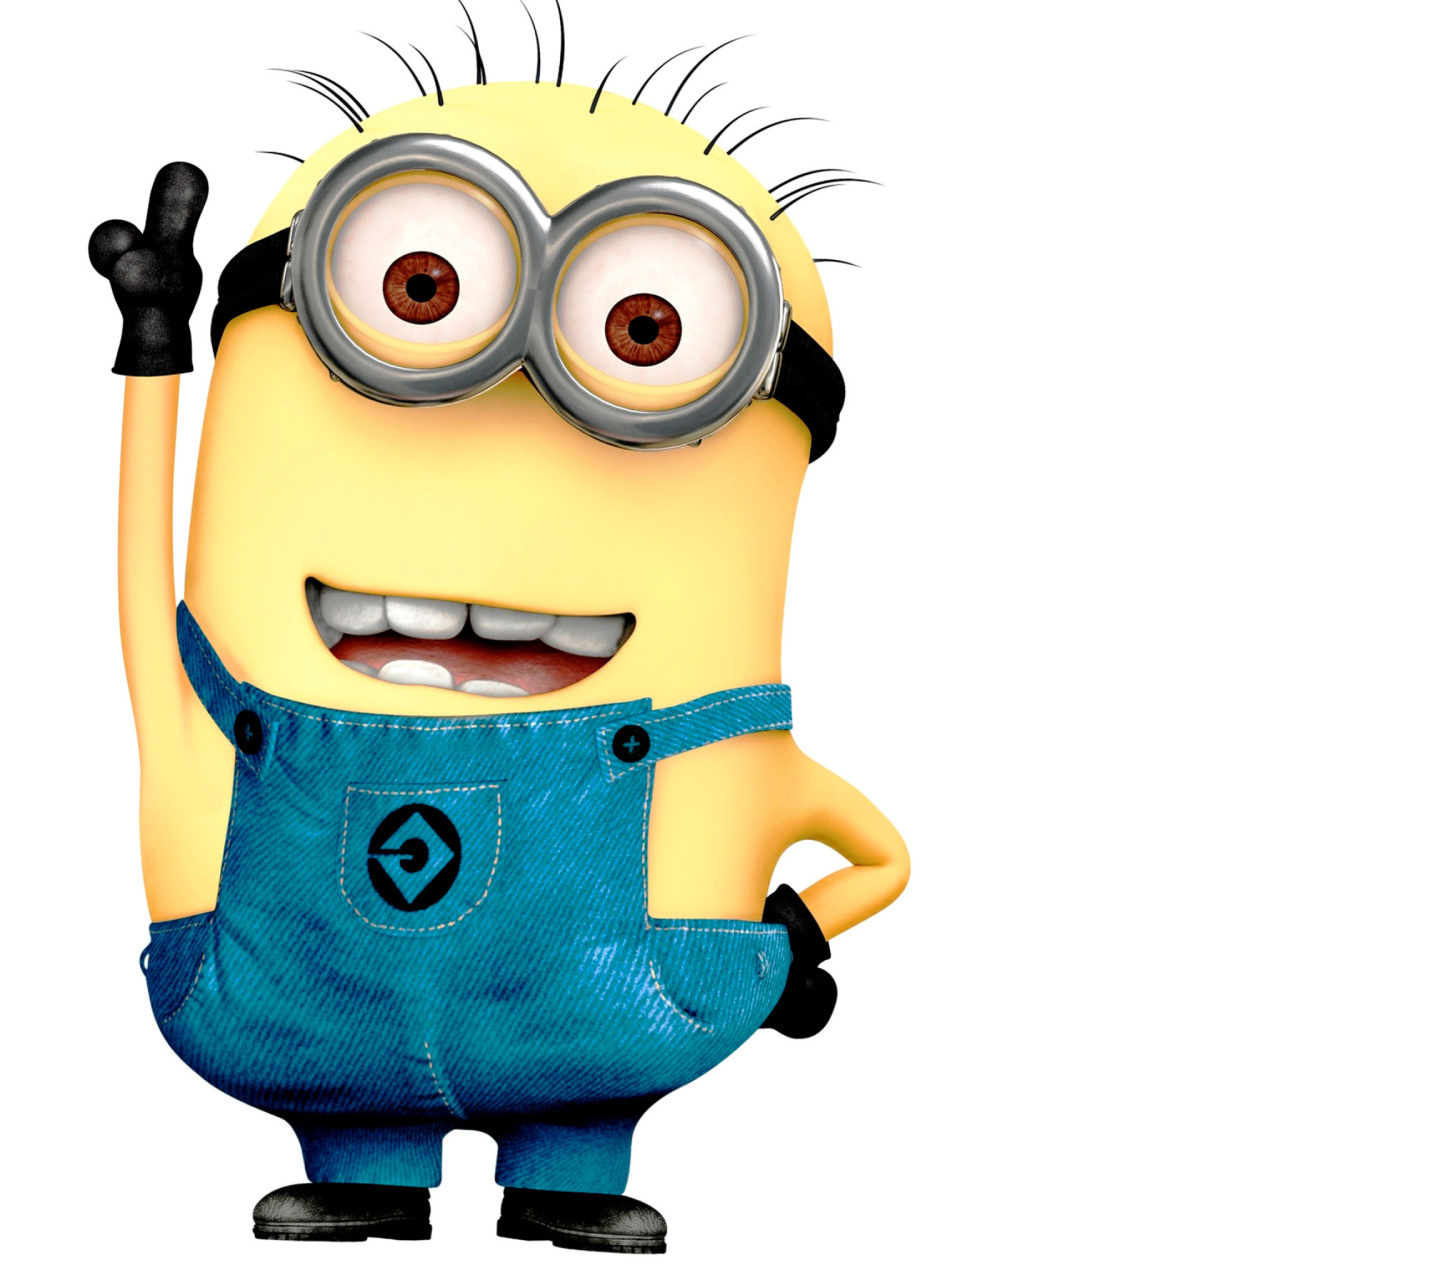 Names of minions and descriptions with individual pictures Pictures of all the minions